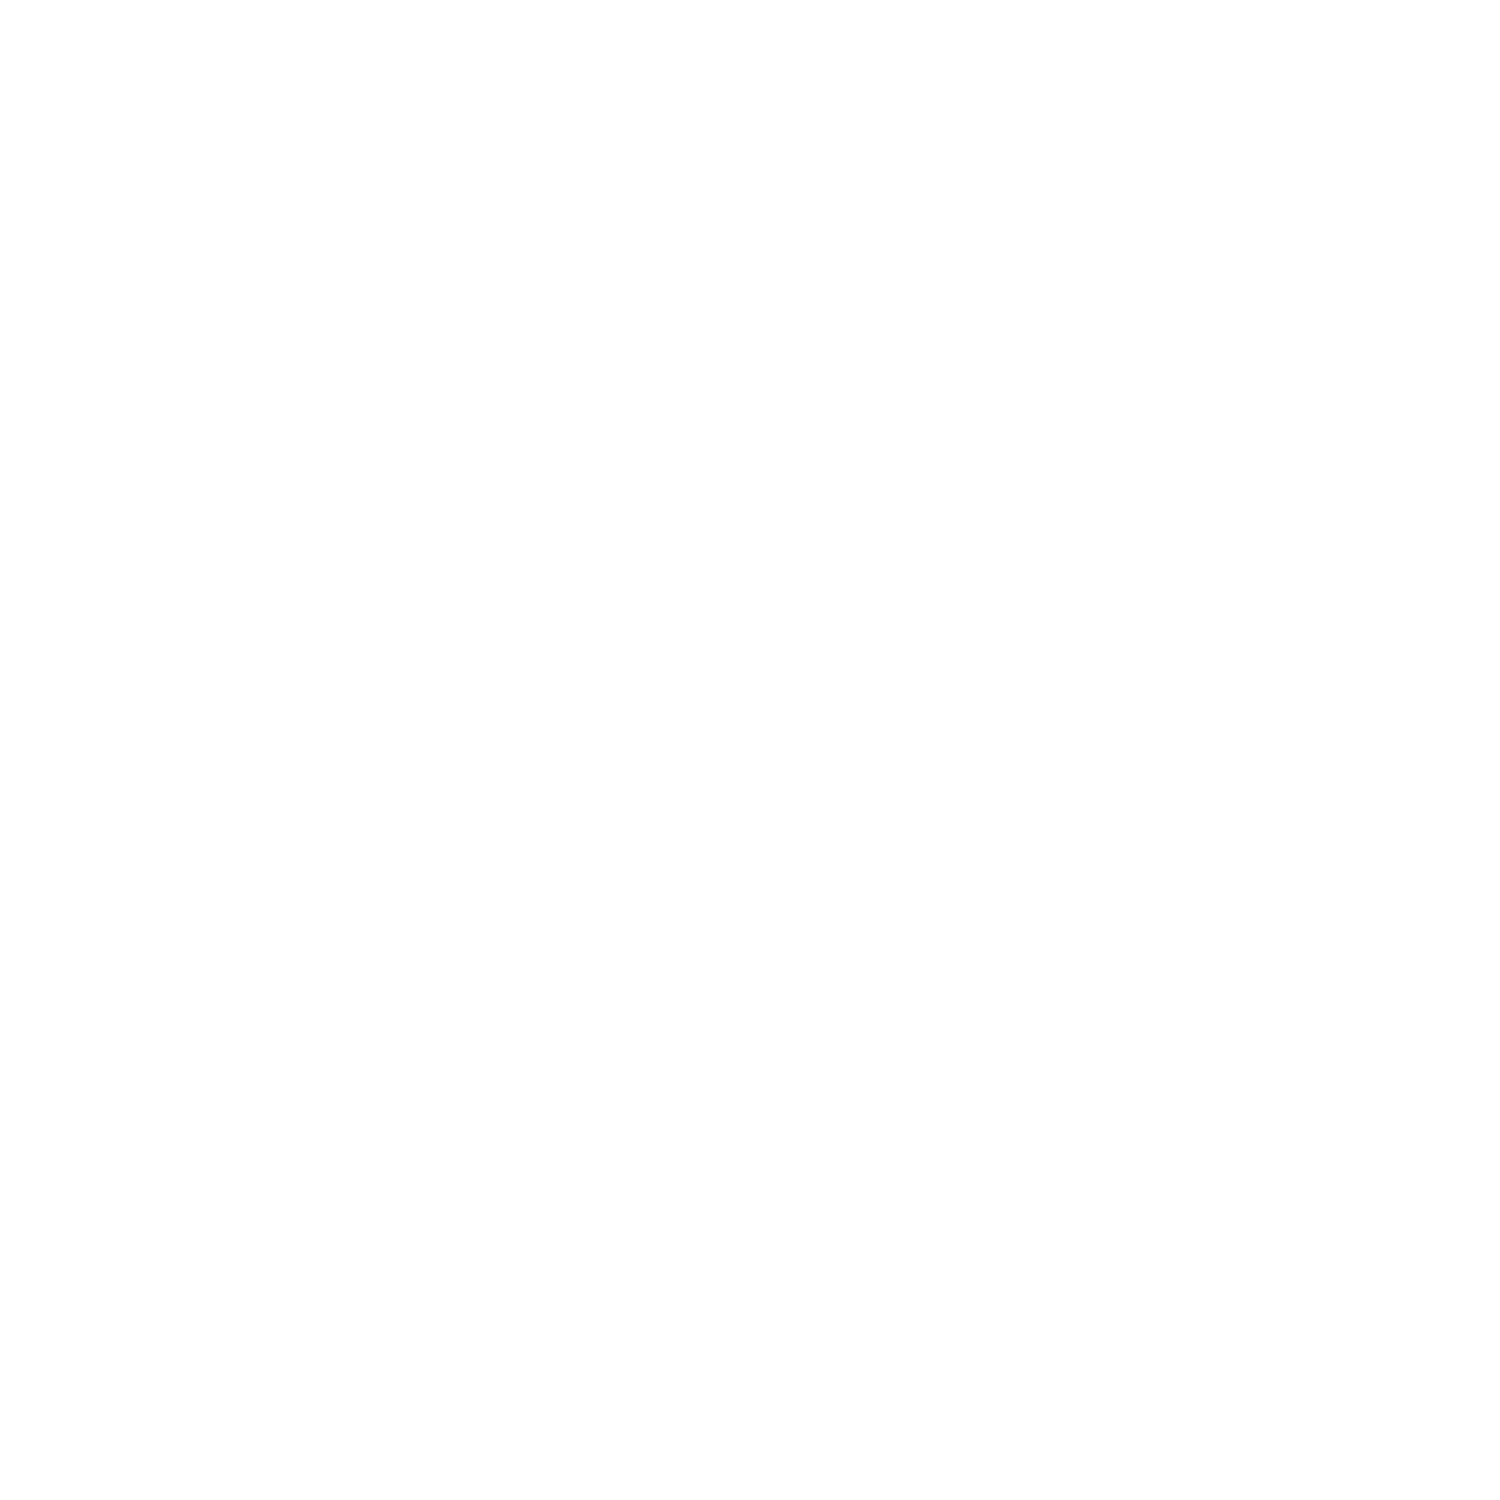 The Sherpa Group Two